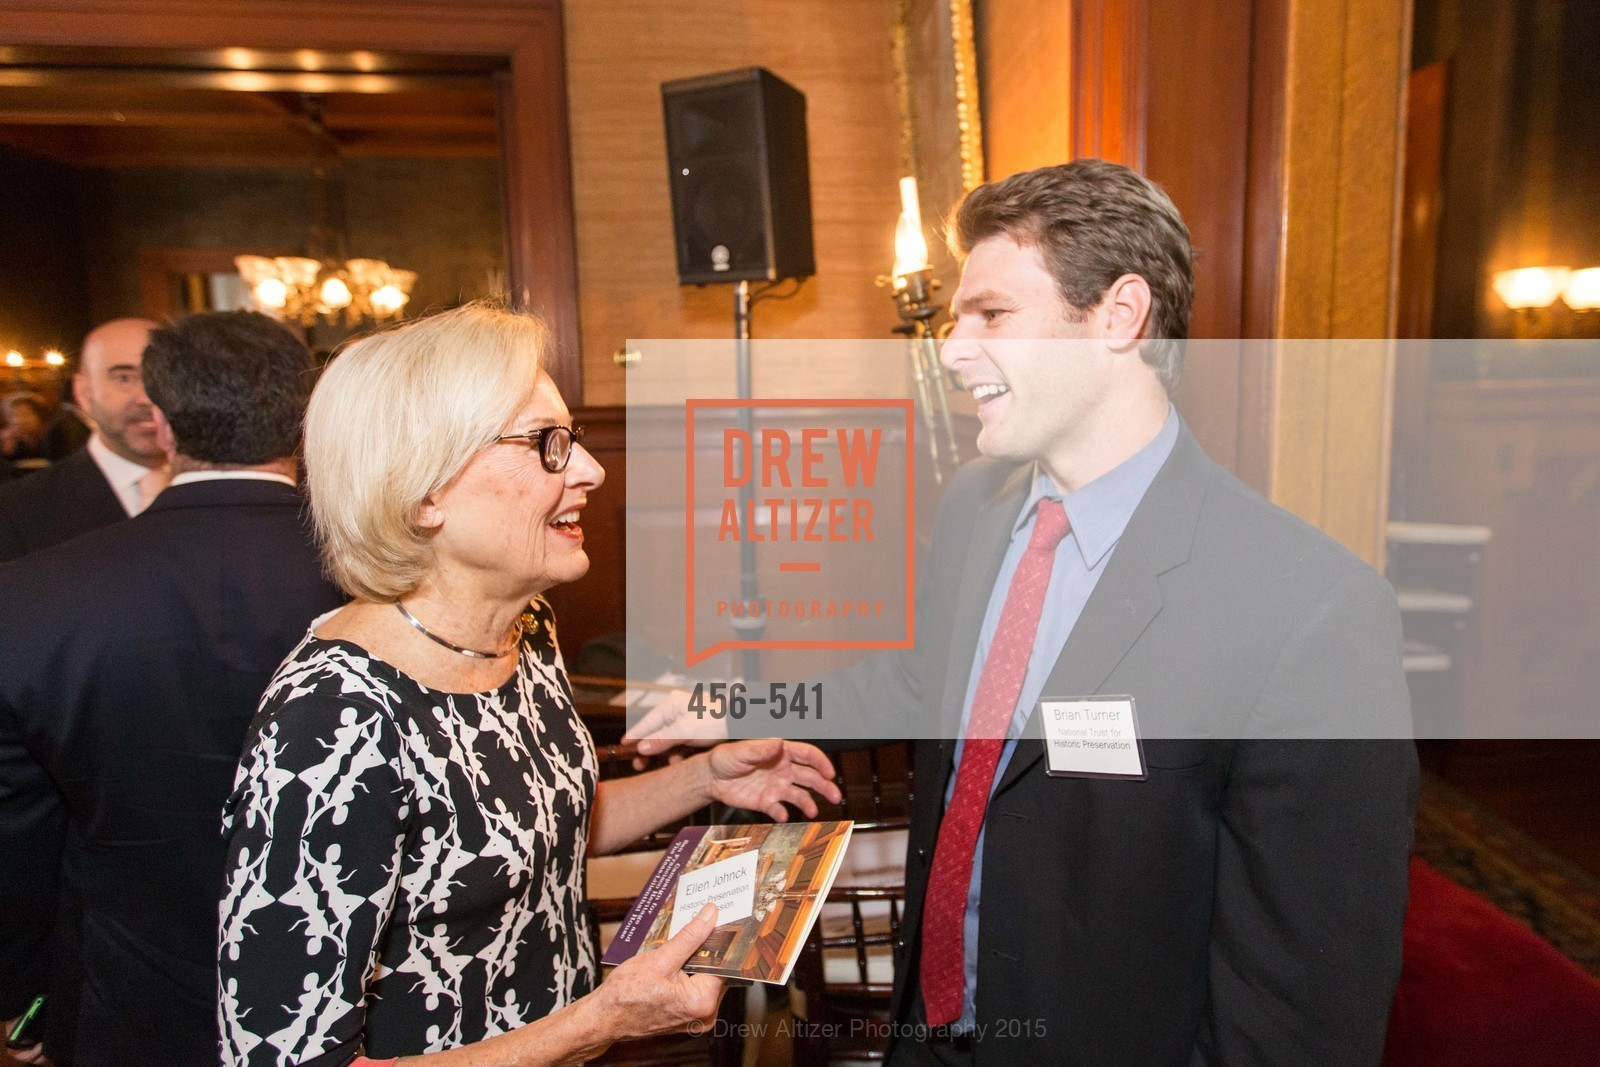 Ellen Johnck, Brian Turner, Ceremony Inaugurating the Campaign for San Francisco Heritage & Haas-Lilienthal House, Haas-Lilienthal House. 2007 Franklin Street, November 18th, 2015,Drew Altizer, Drew Altizer Photography, full-service event agency, private events, San Francisco photographer, photographer California